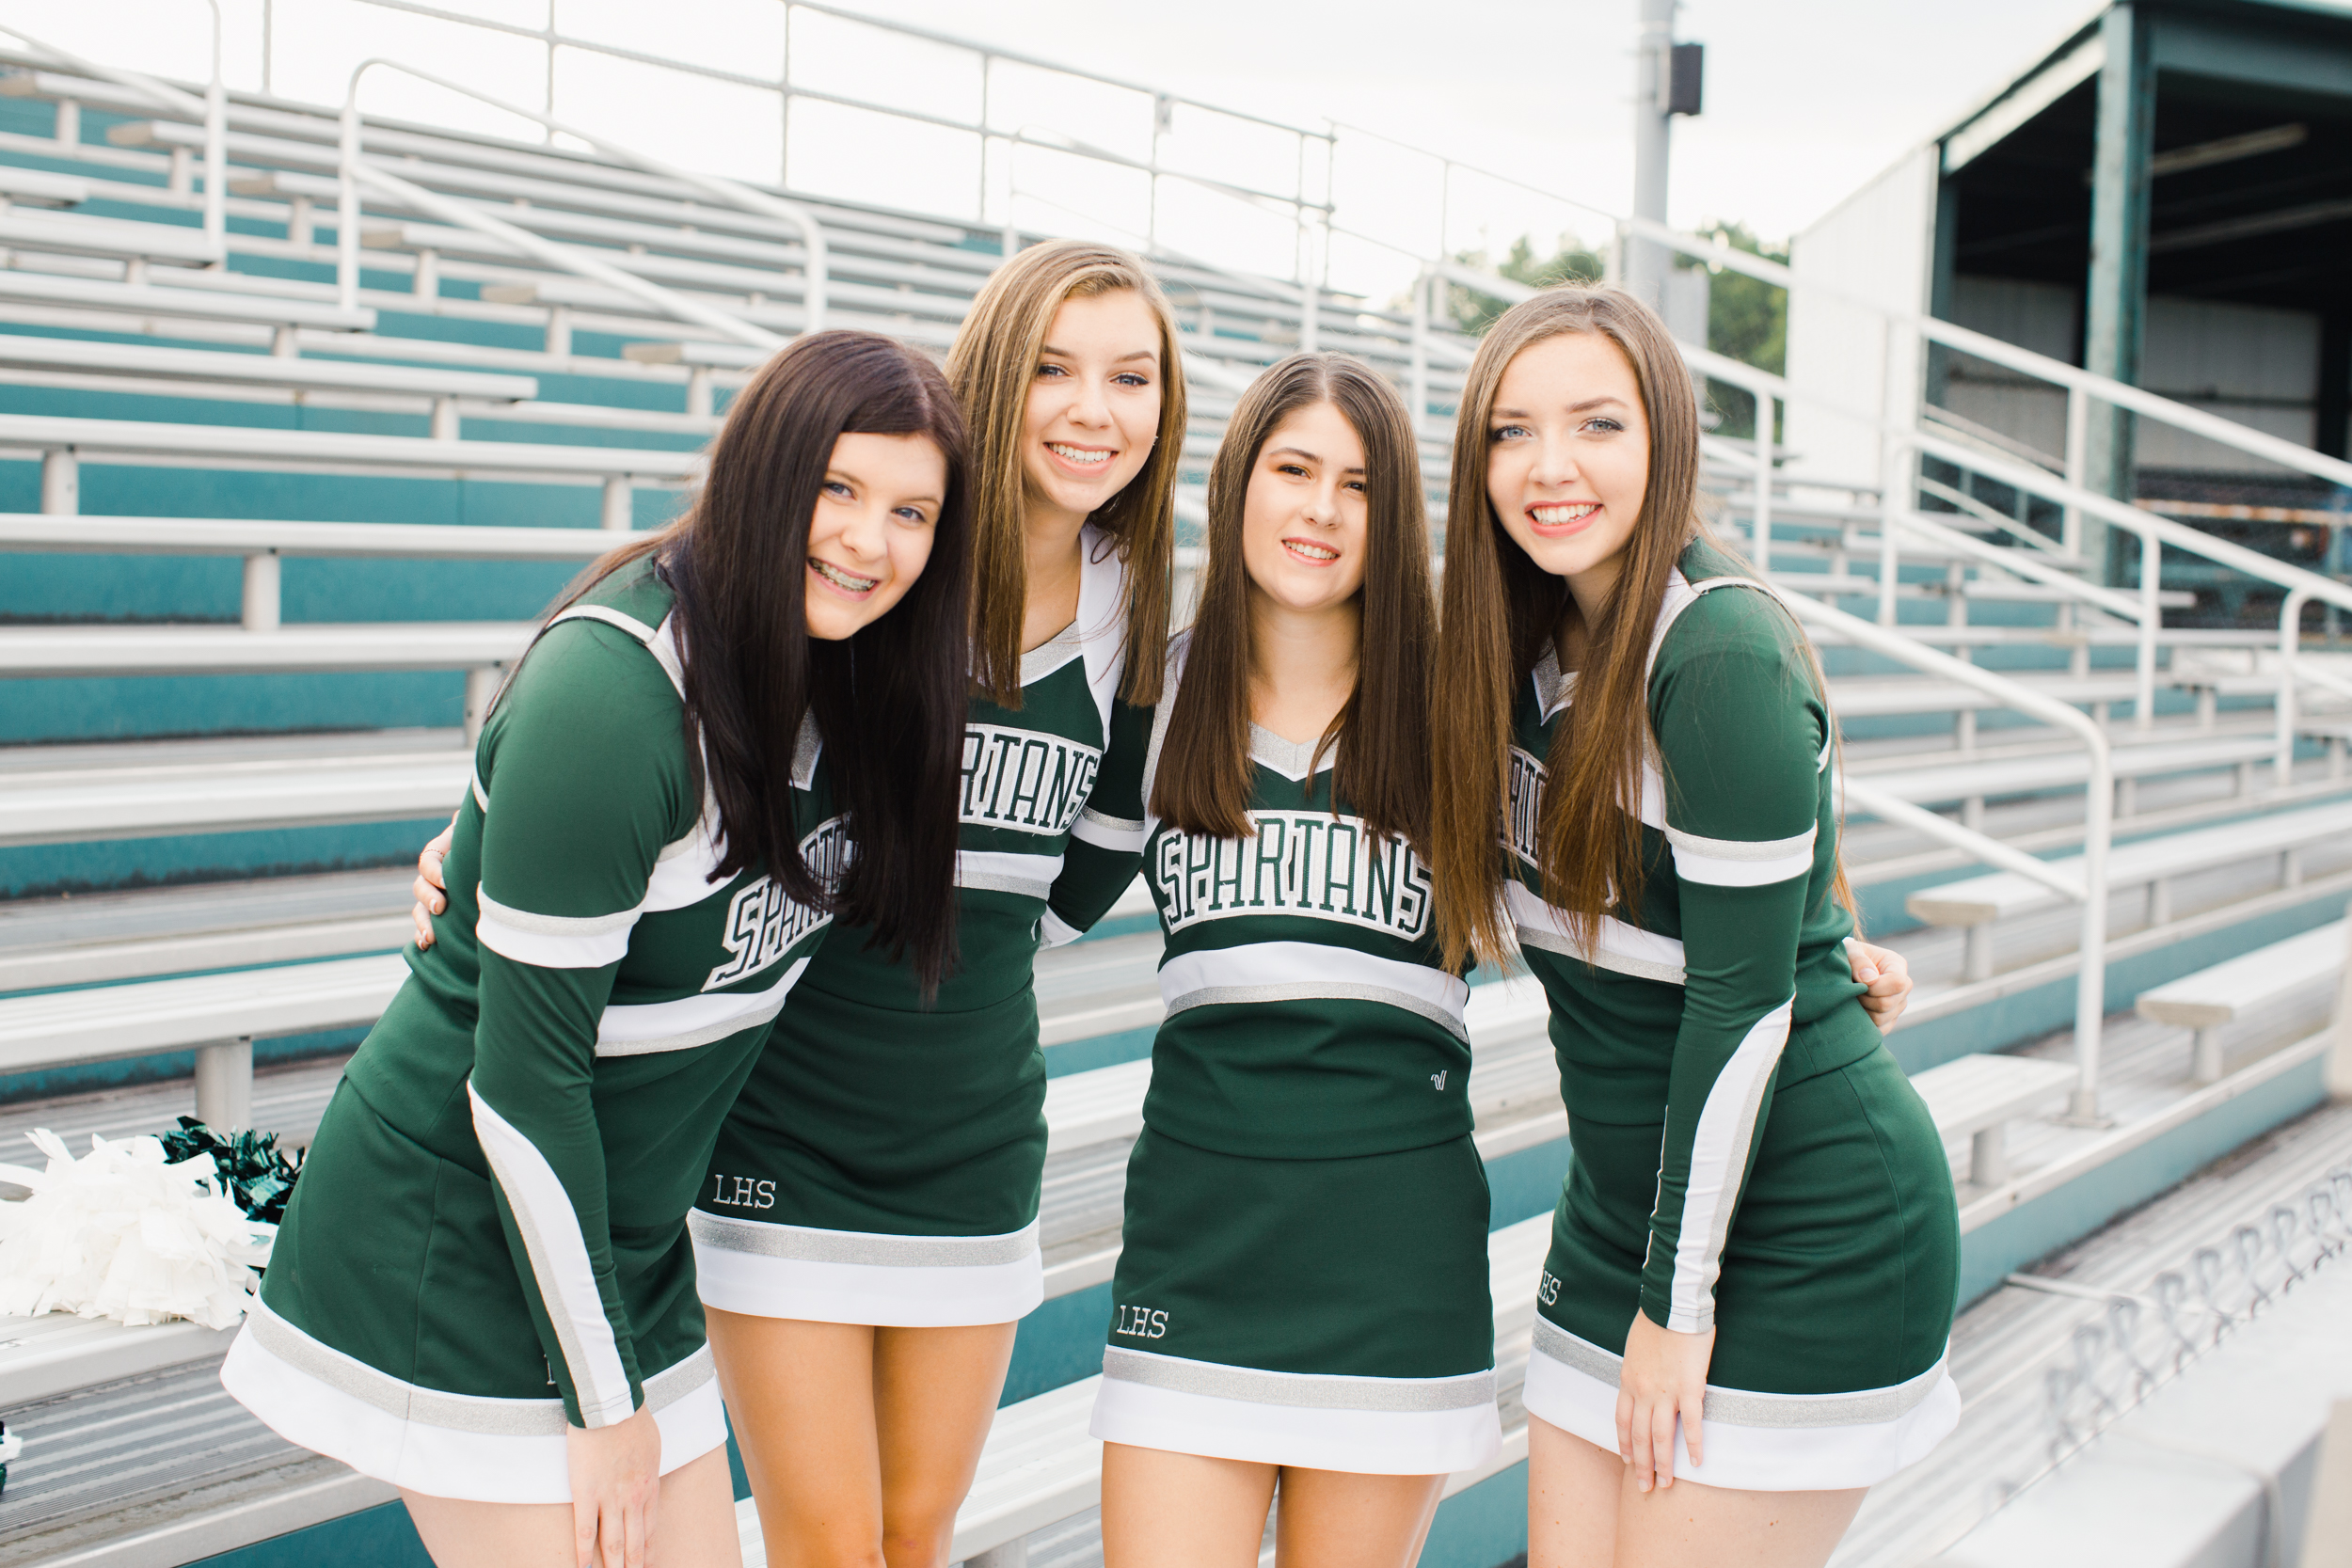 Laurel_HS_Varisty_Senior_2019_Cheerleaders (7 of 27).jpg